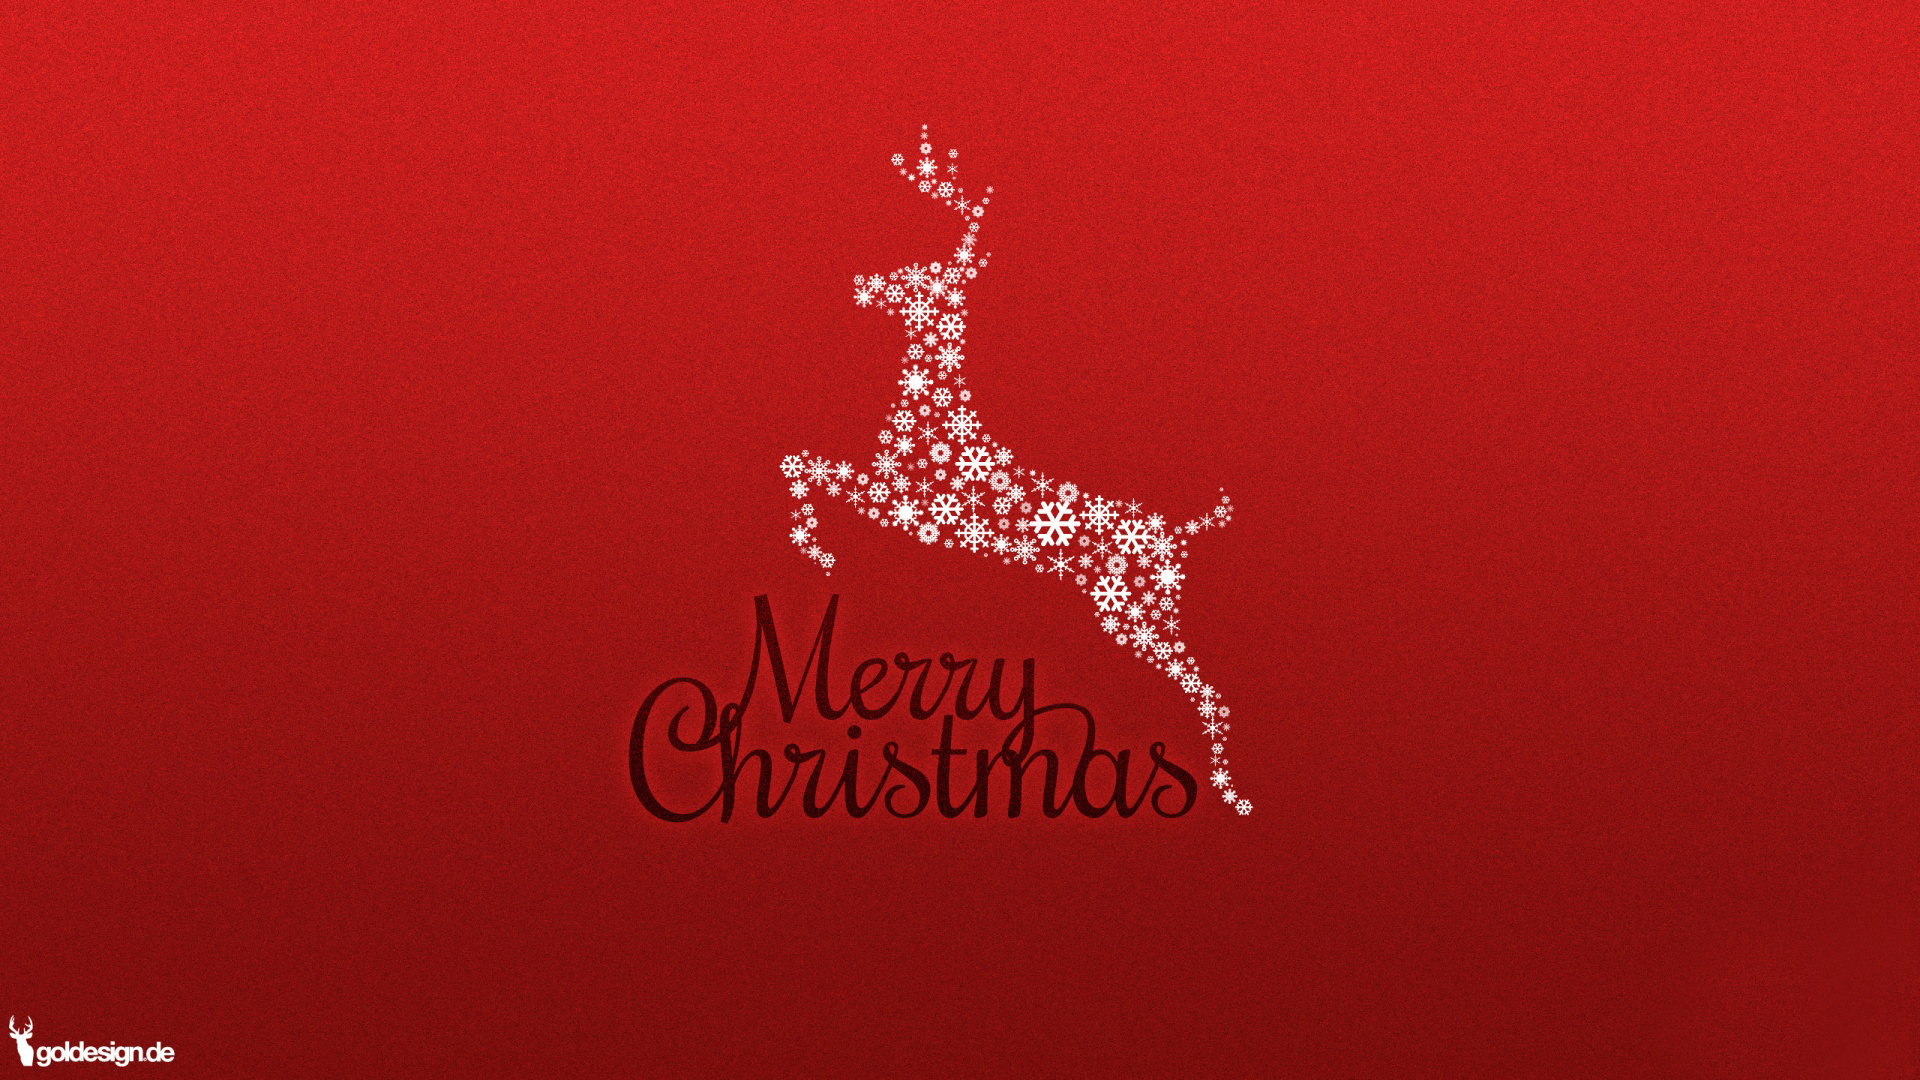 Merry Christmas wallpaper Full HD 1080p 2014 19201080 Full HD 1920x1080